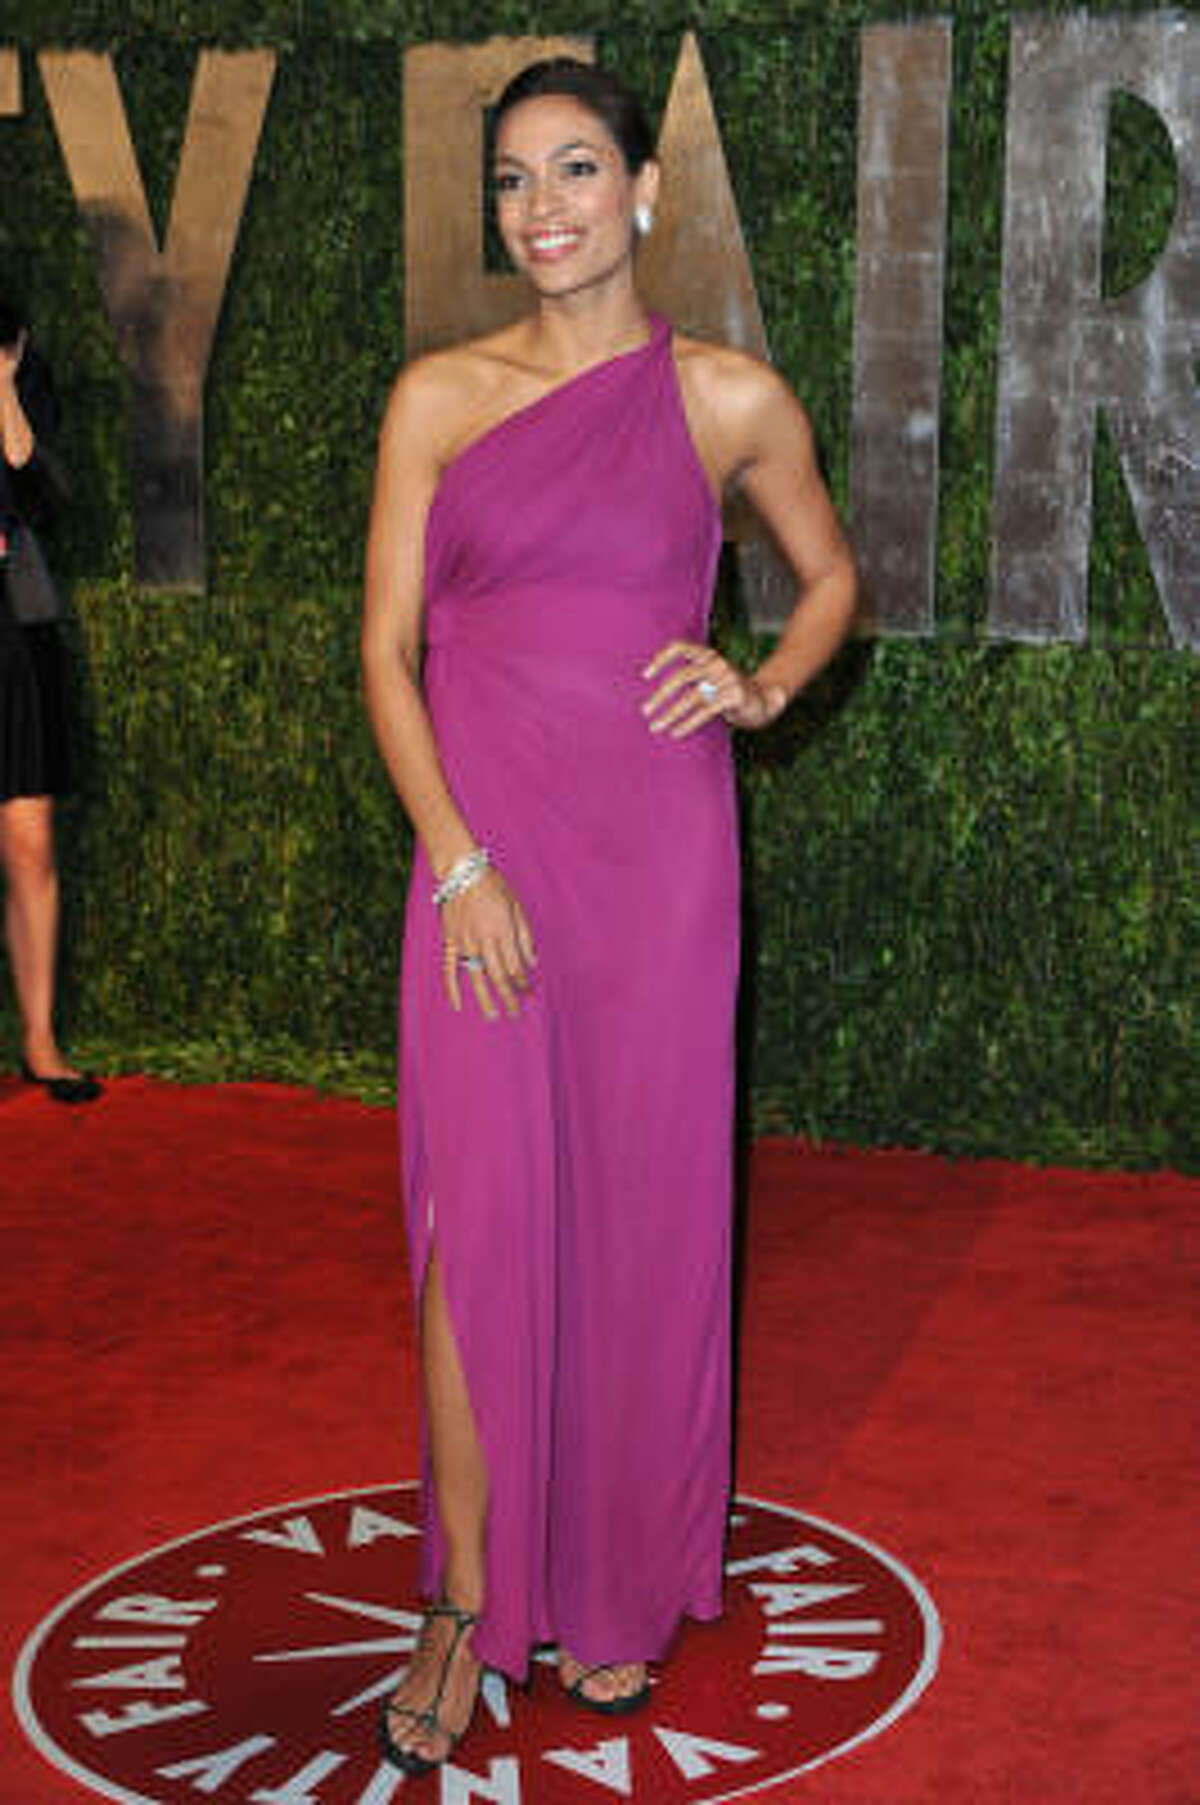 Rosario Dawson's beautiful complexion works perfectly with this bright pink Greek goddess inspired gown.